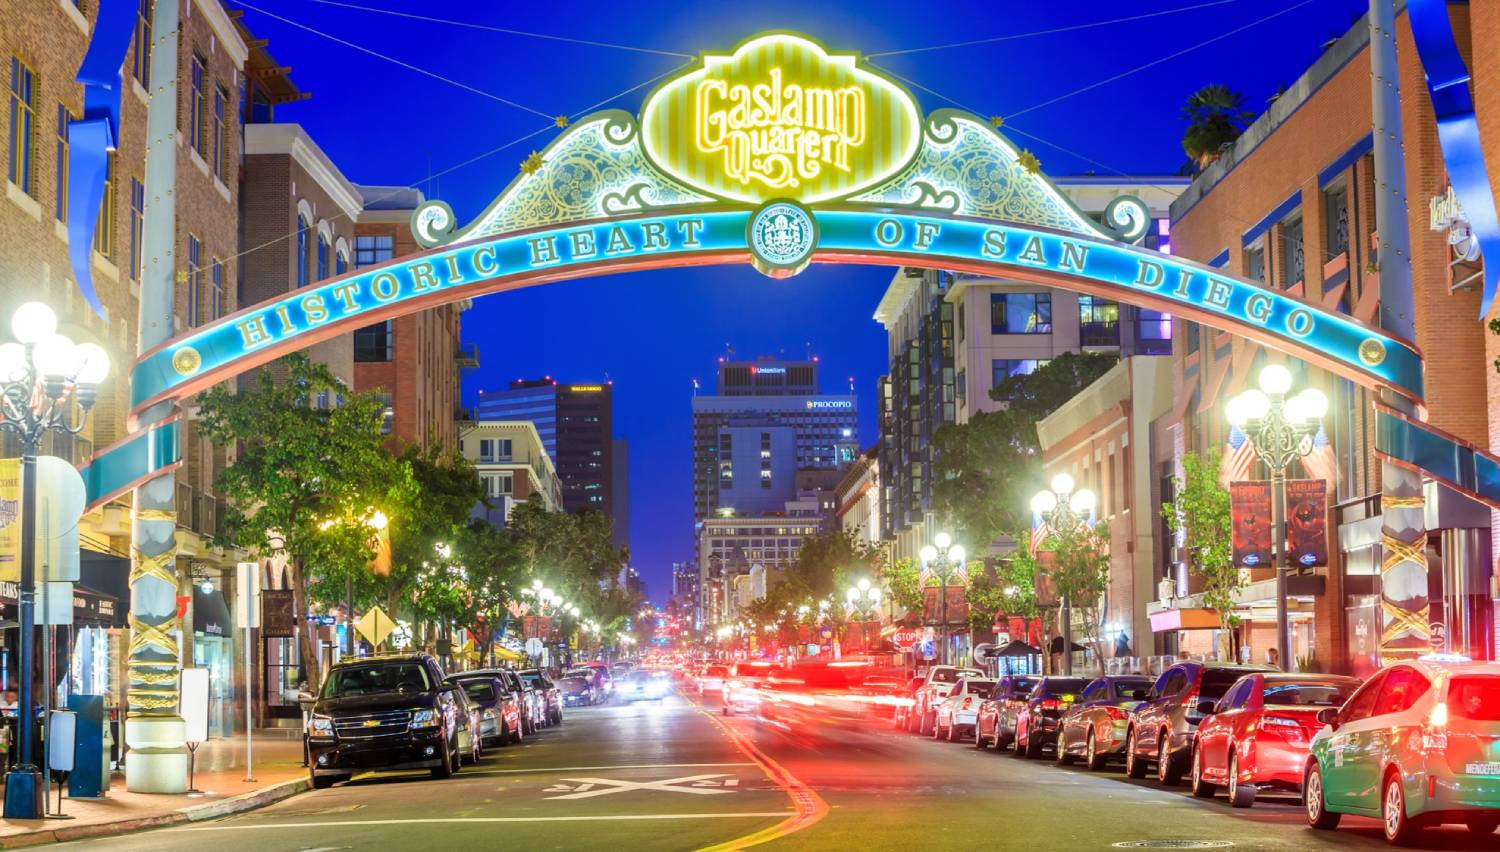 Gaslamp Quarter - Things To Do In San Diego